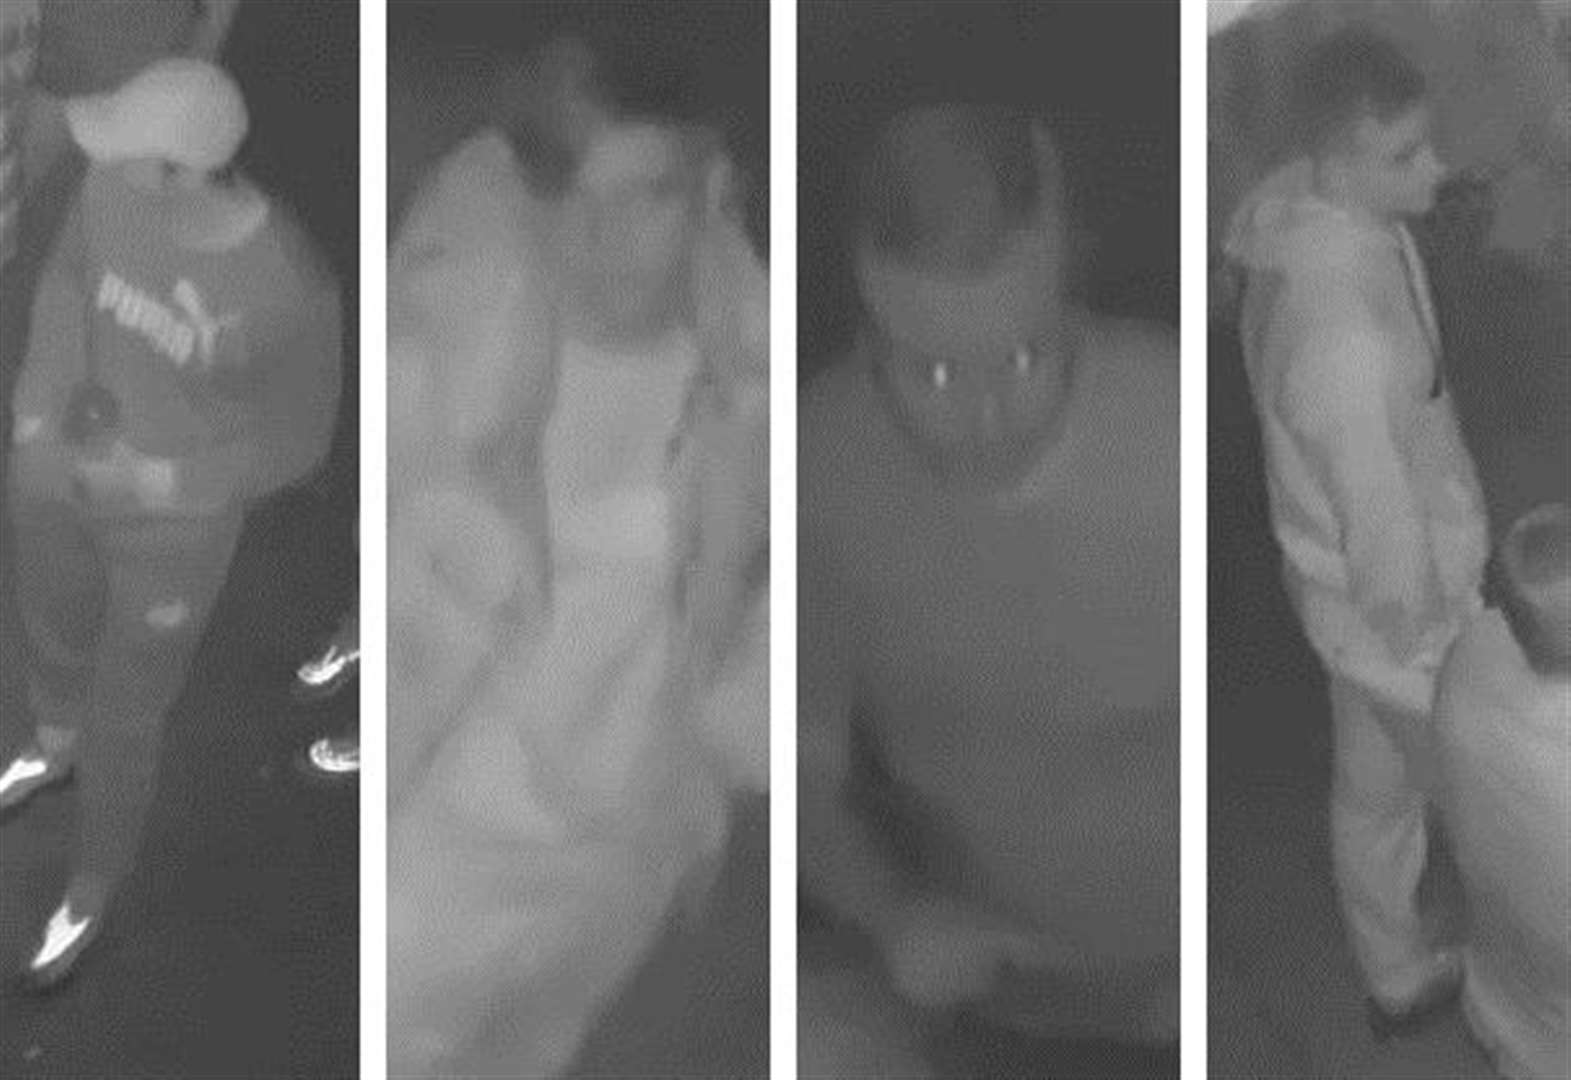 Police launch CCTV appeal for information after affray in Thorley Park